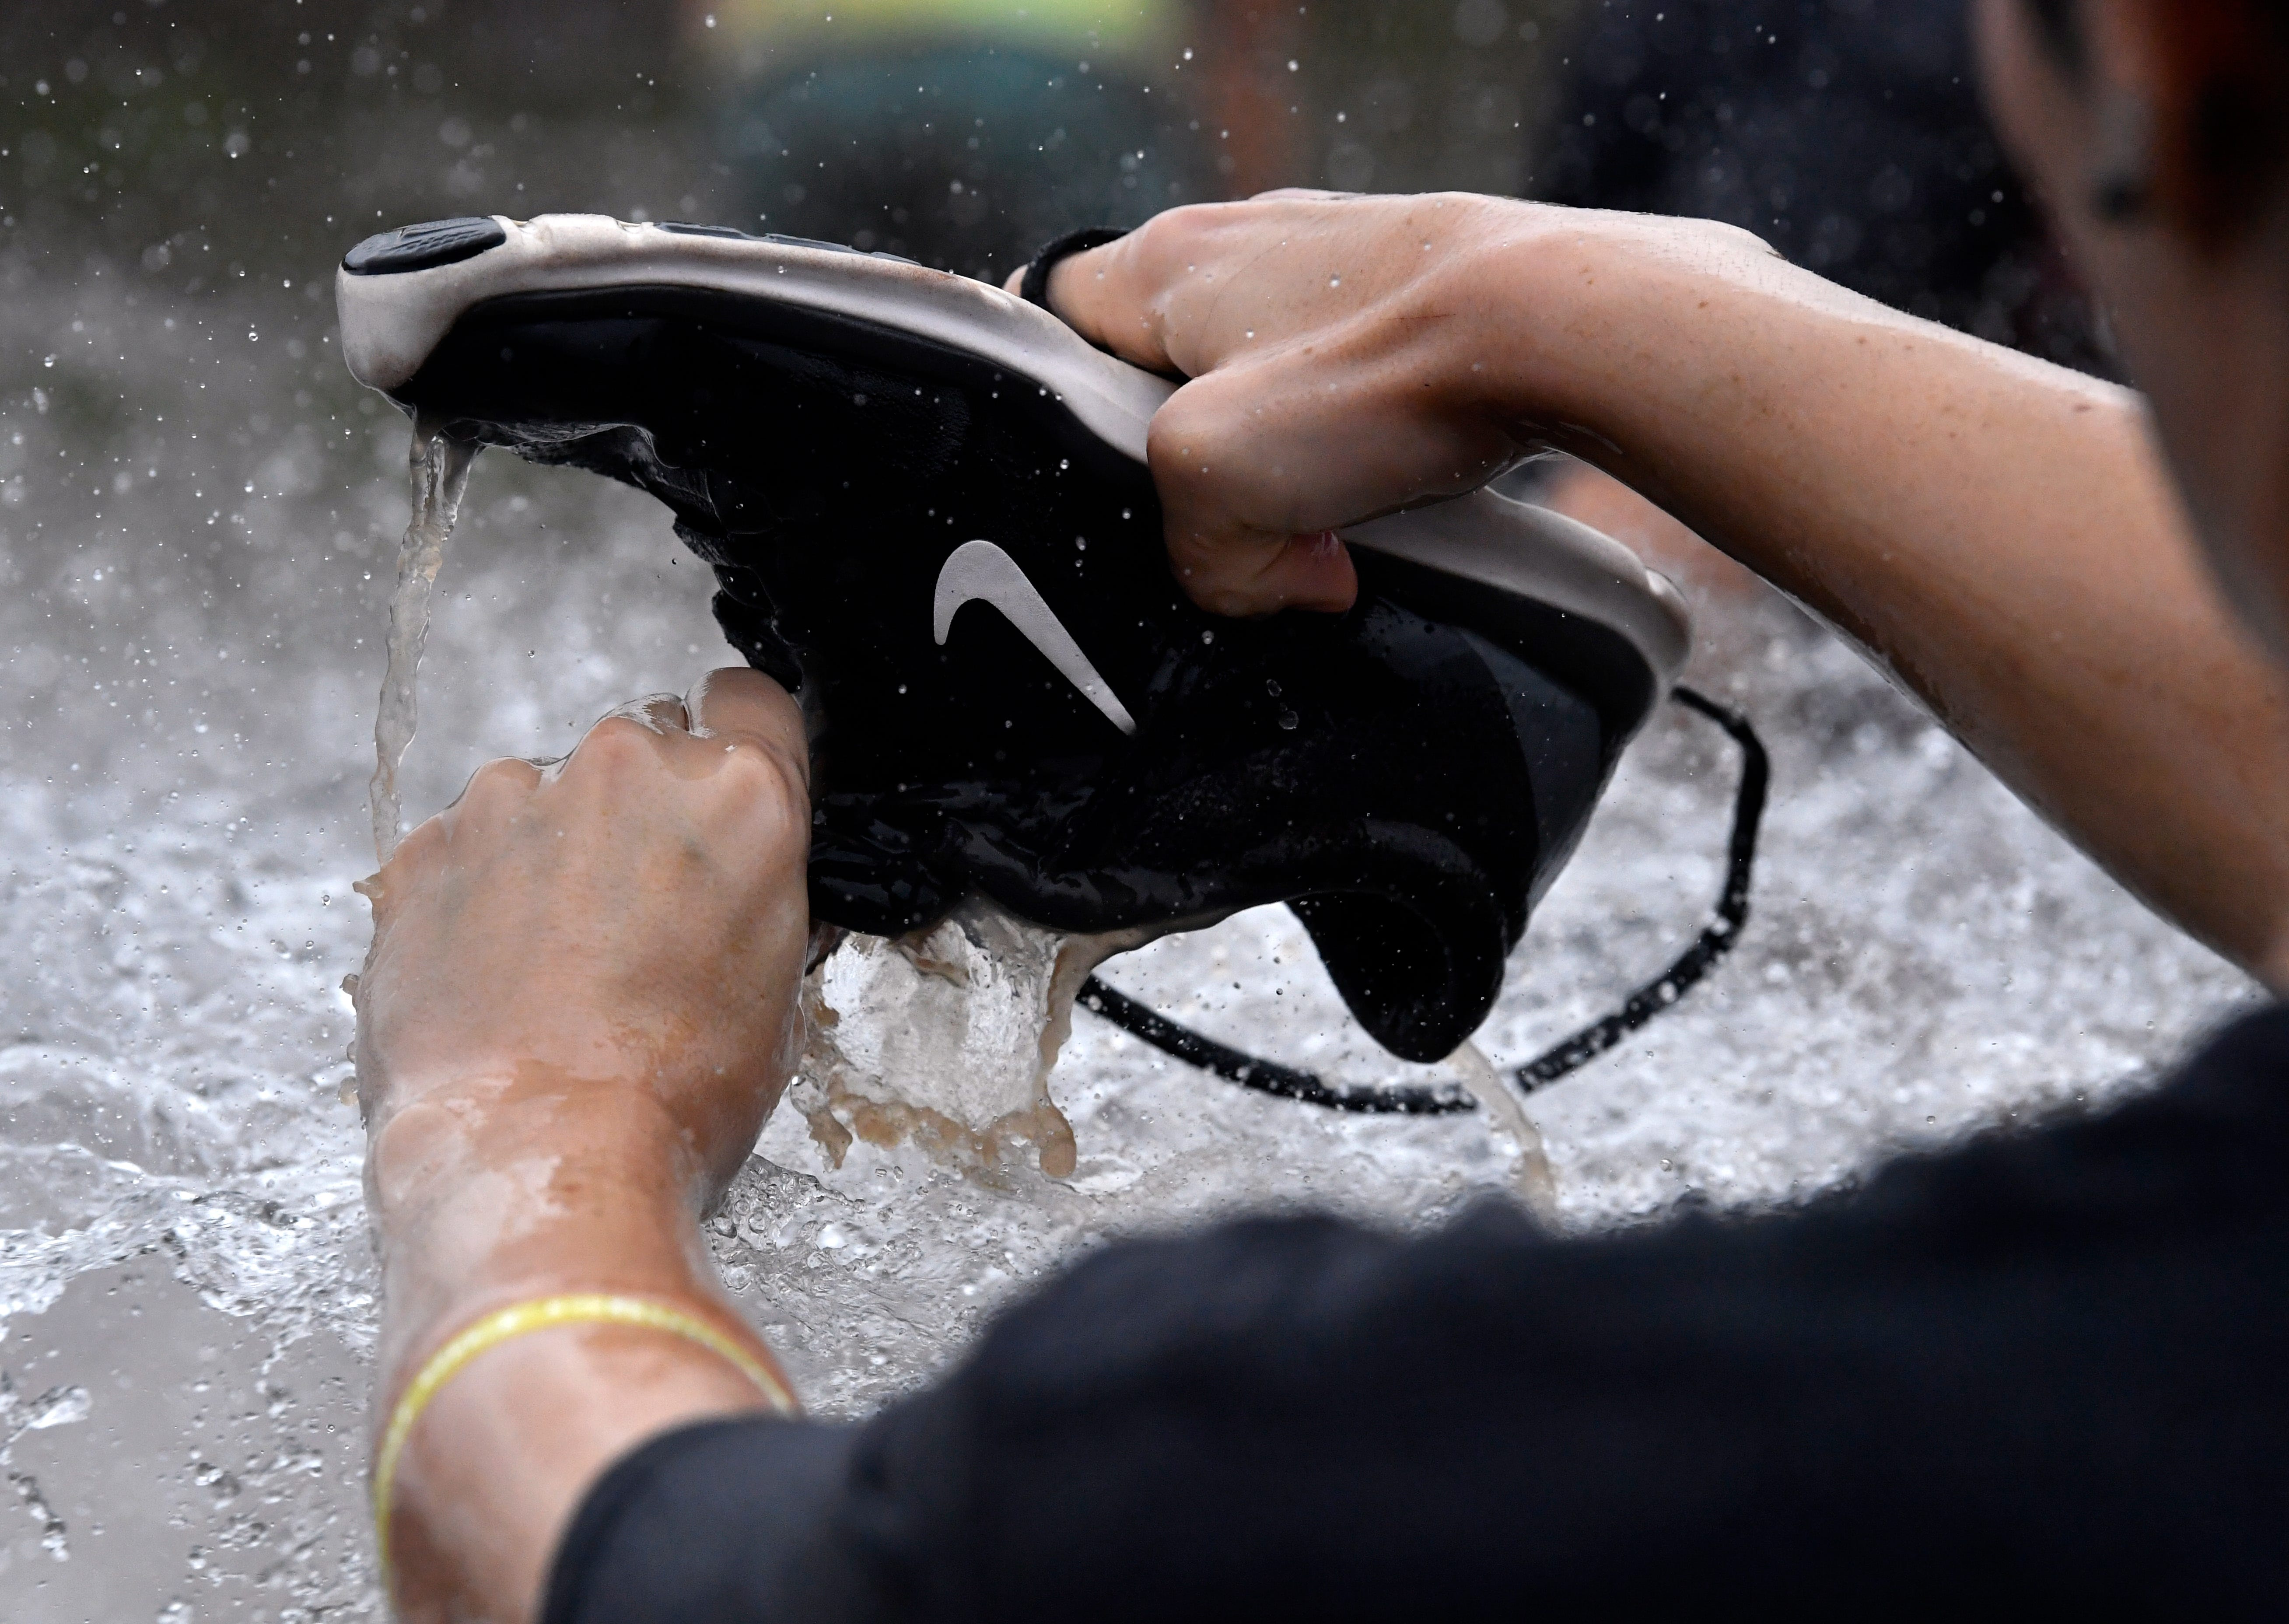 A runner washes her shoe out at the end of a course, courtesy of a tanker truck. The eighth annual Mudslinger Fun Run was held Saturday at Seabee Park. The nearly three-mile course featured numerous obstacles, both man- and mud-made. It benefits Abilene Youth Sports Authority.